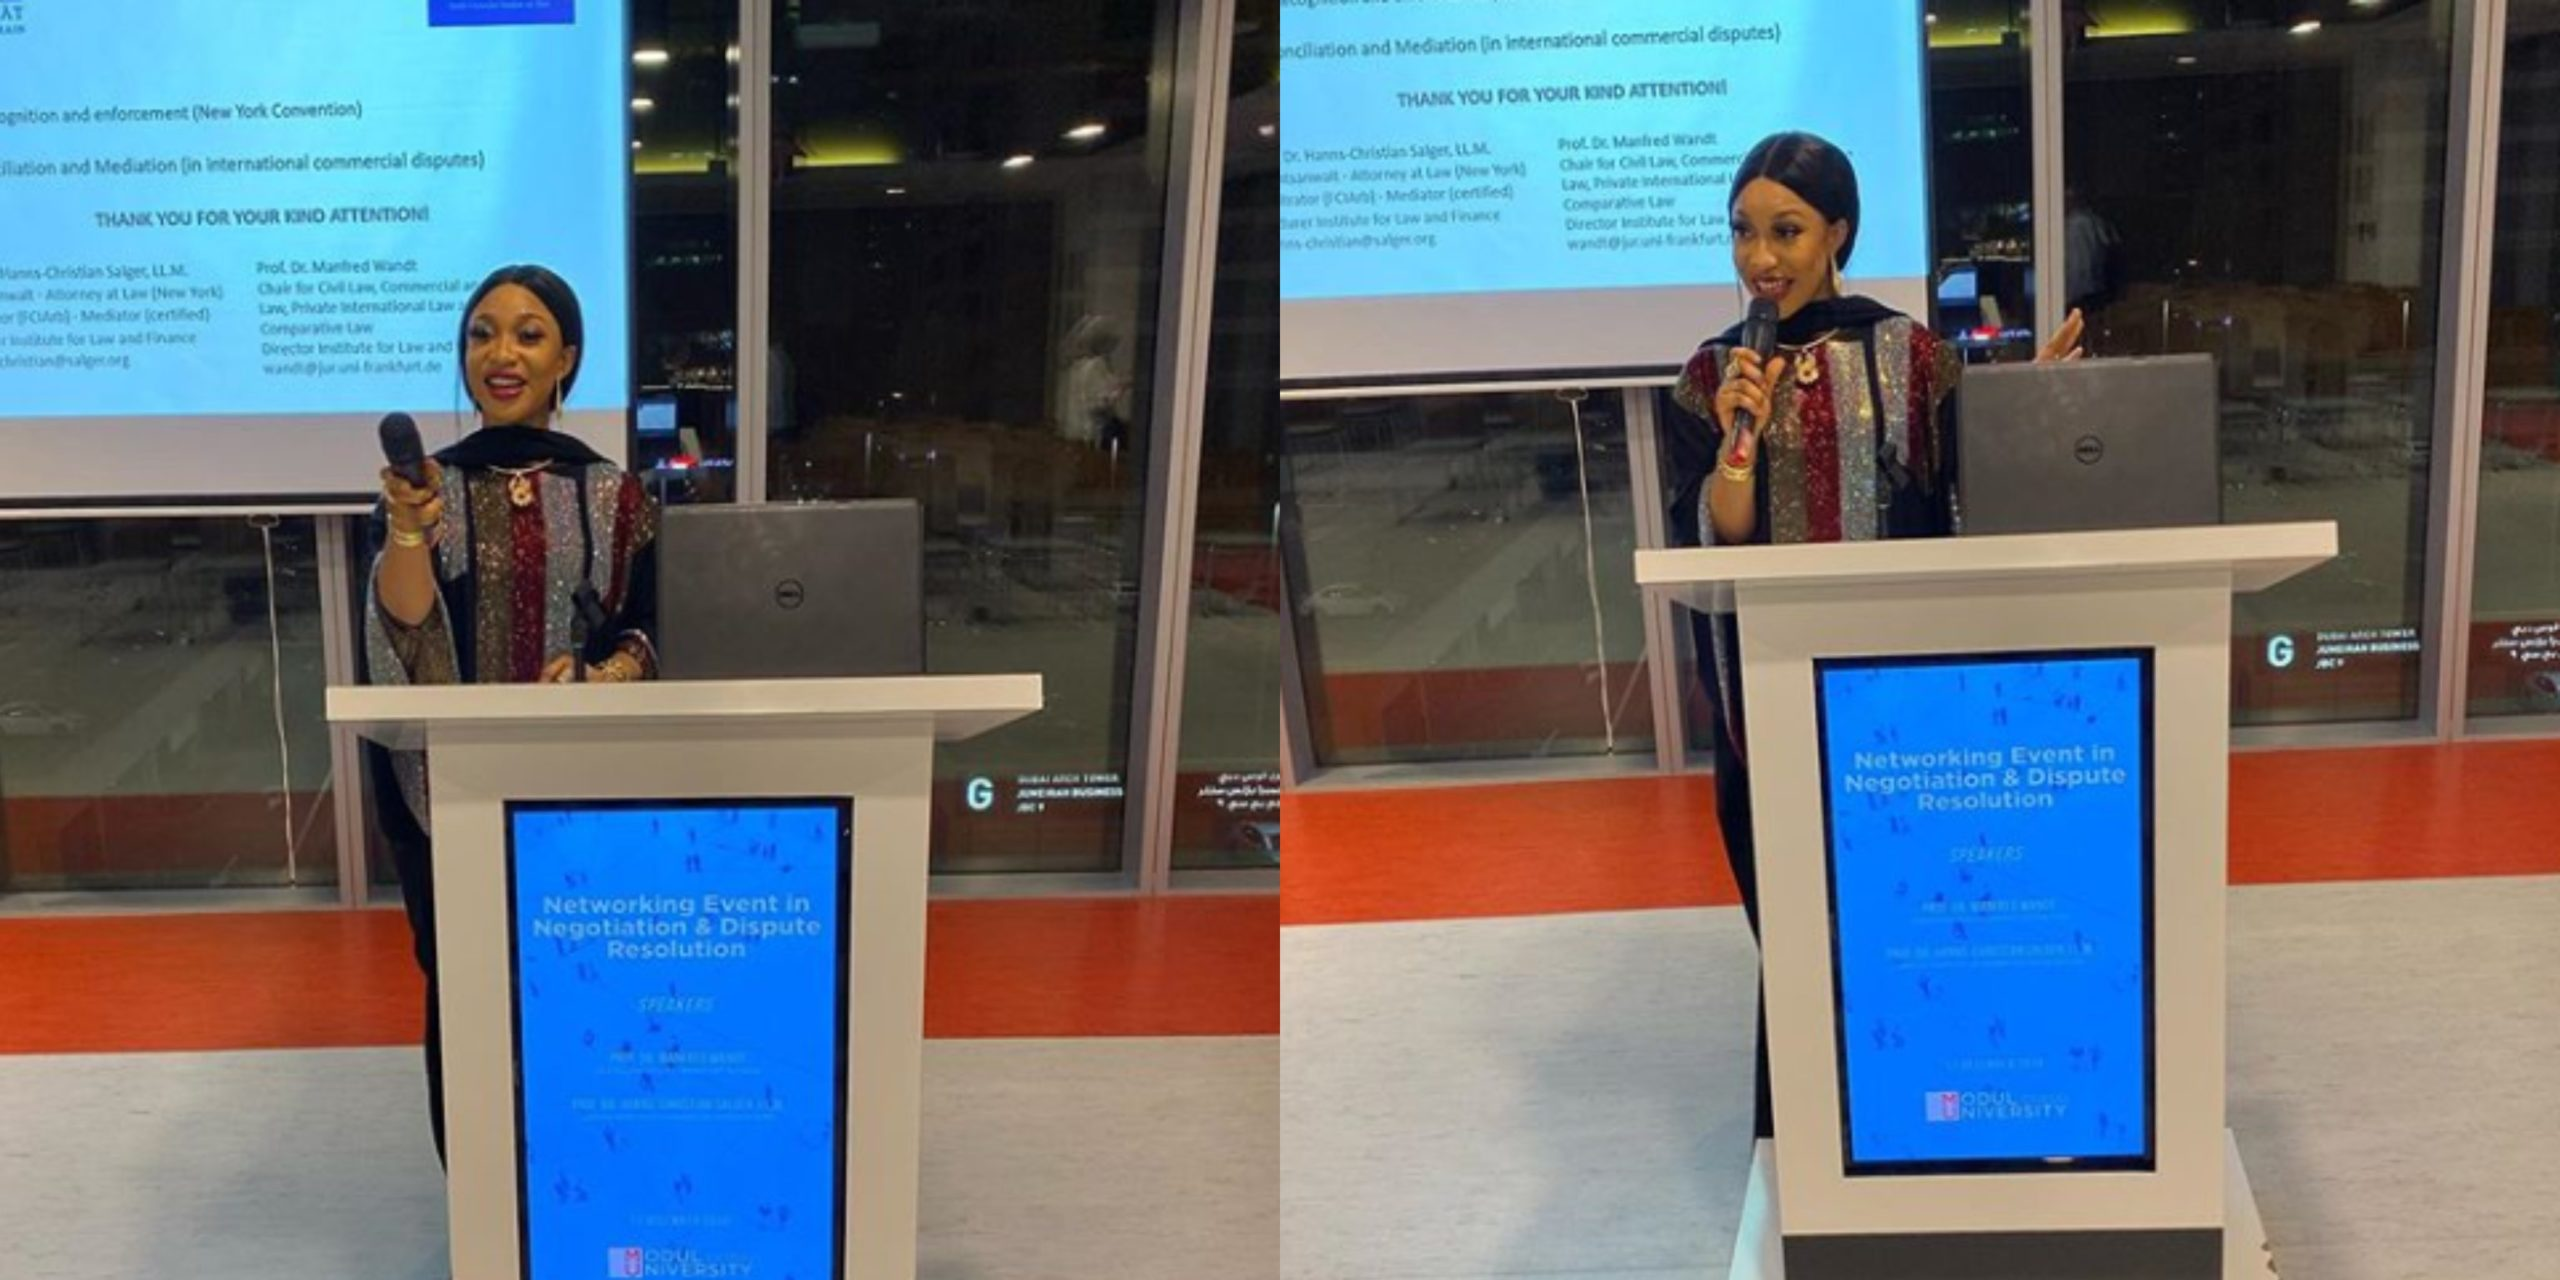 Audio Speaker: Tonto Dikeh busted for being a guest speaker to empty seats in Dubai (Photos)